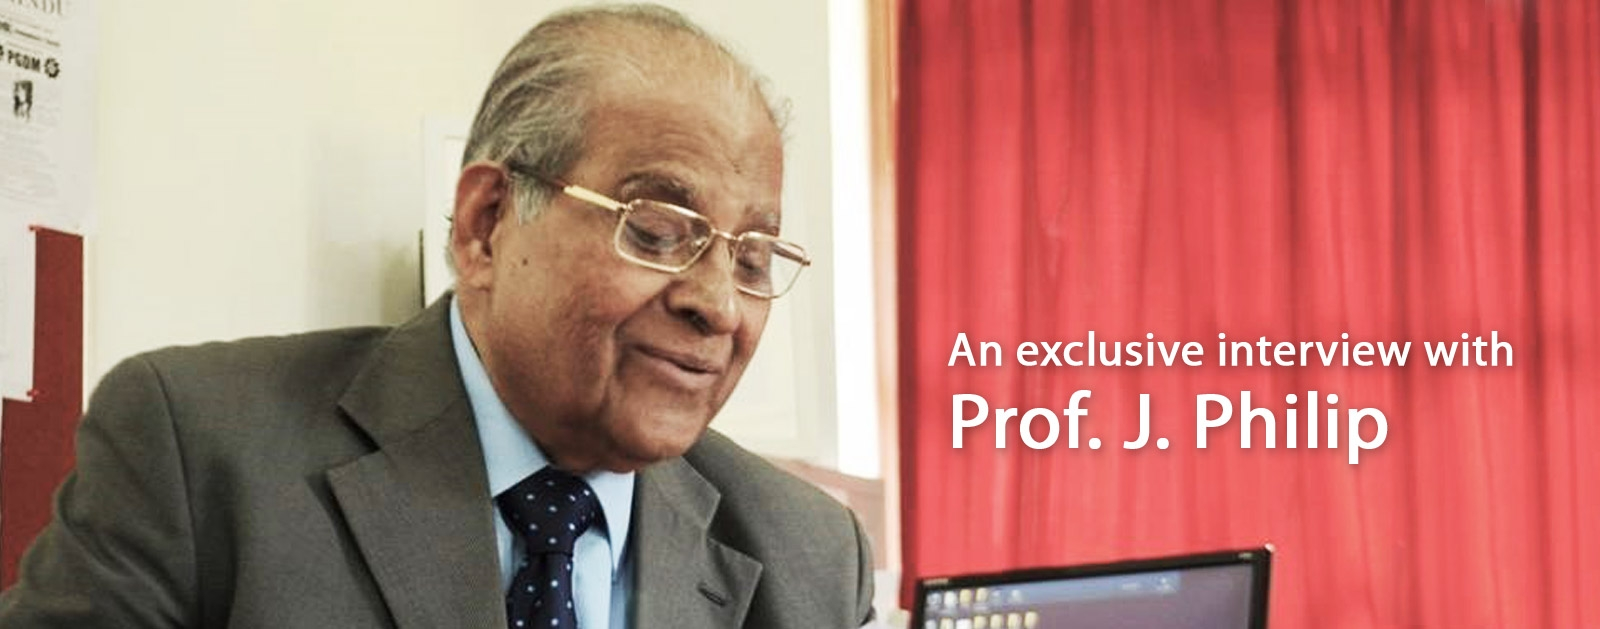 An exclusive interview with Prof. J. Philip